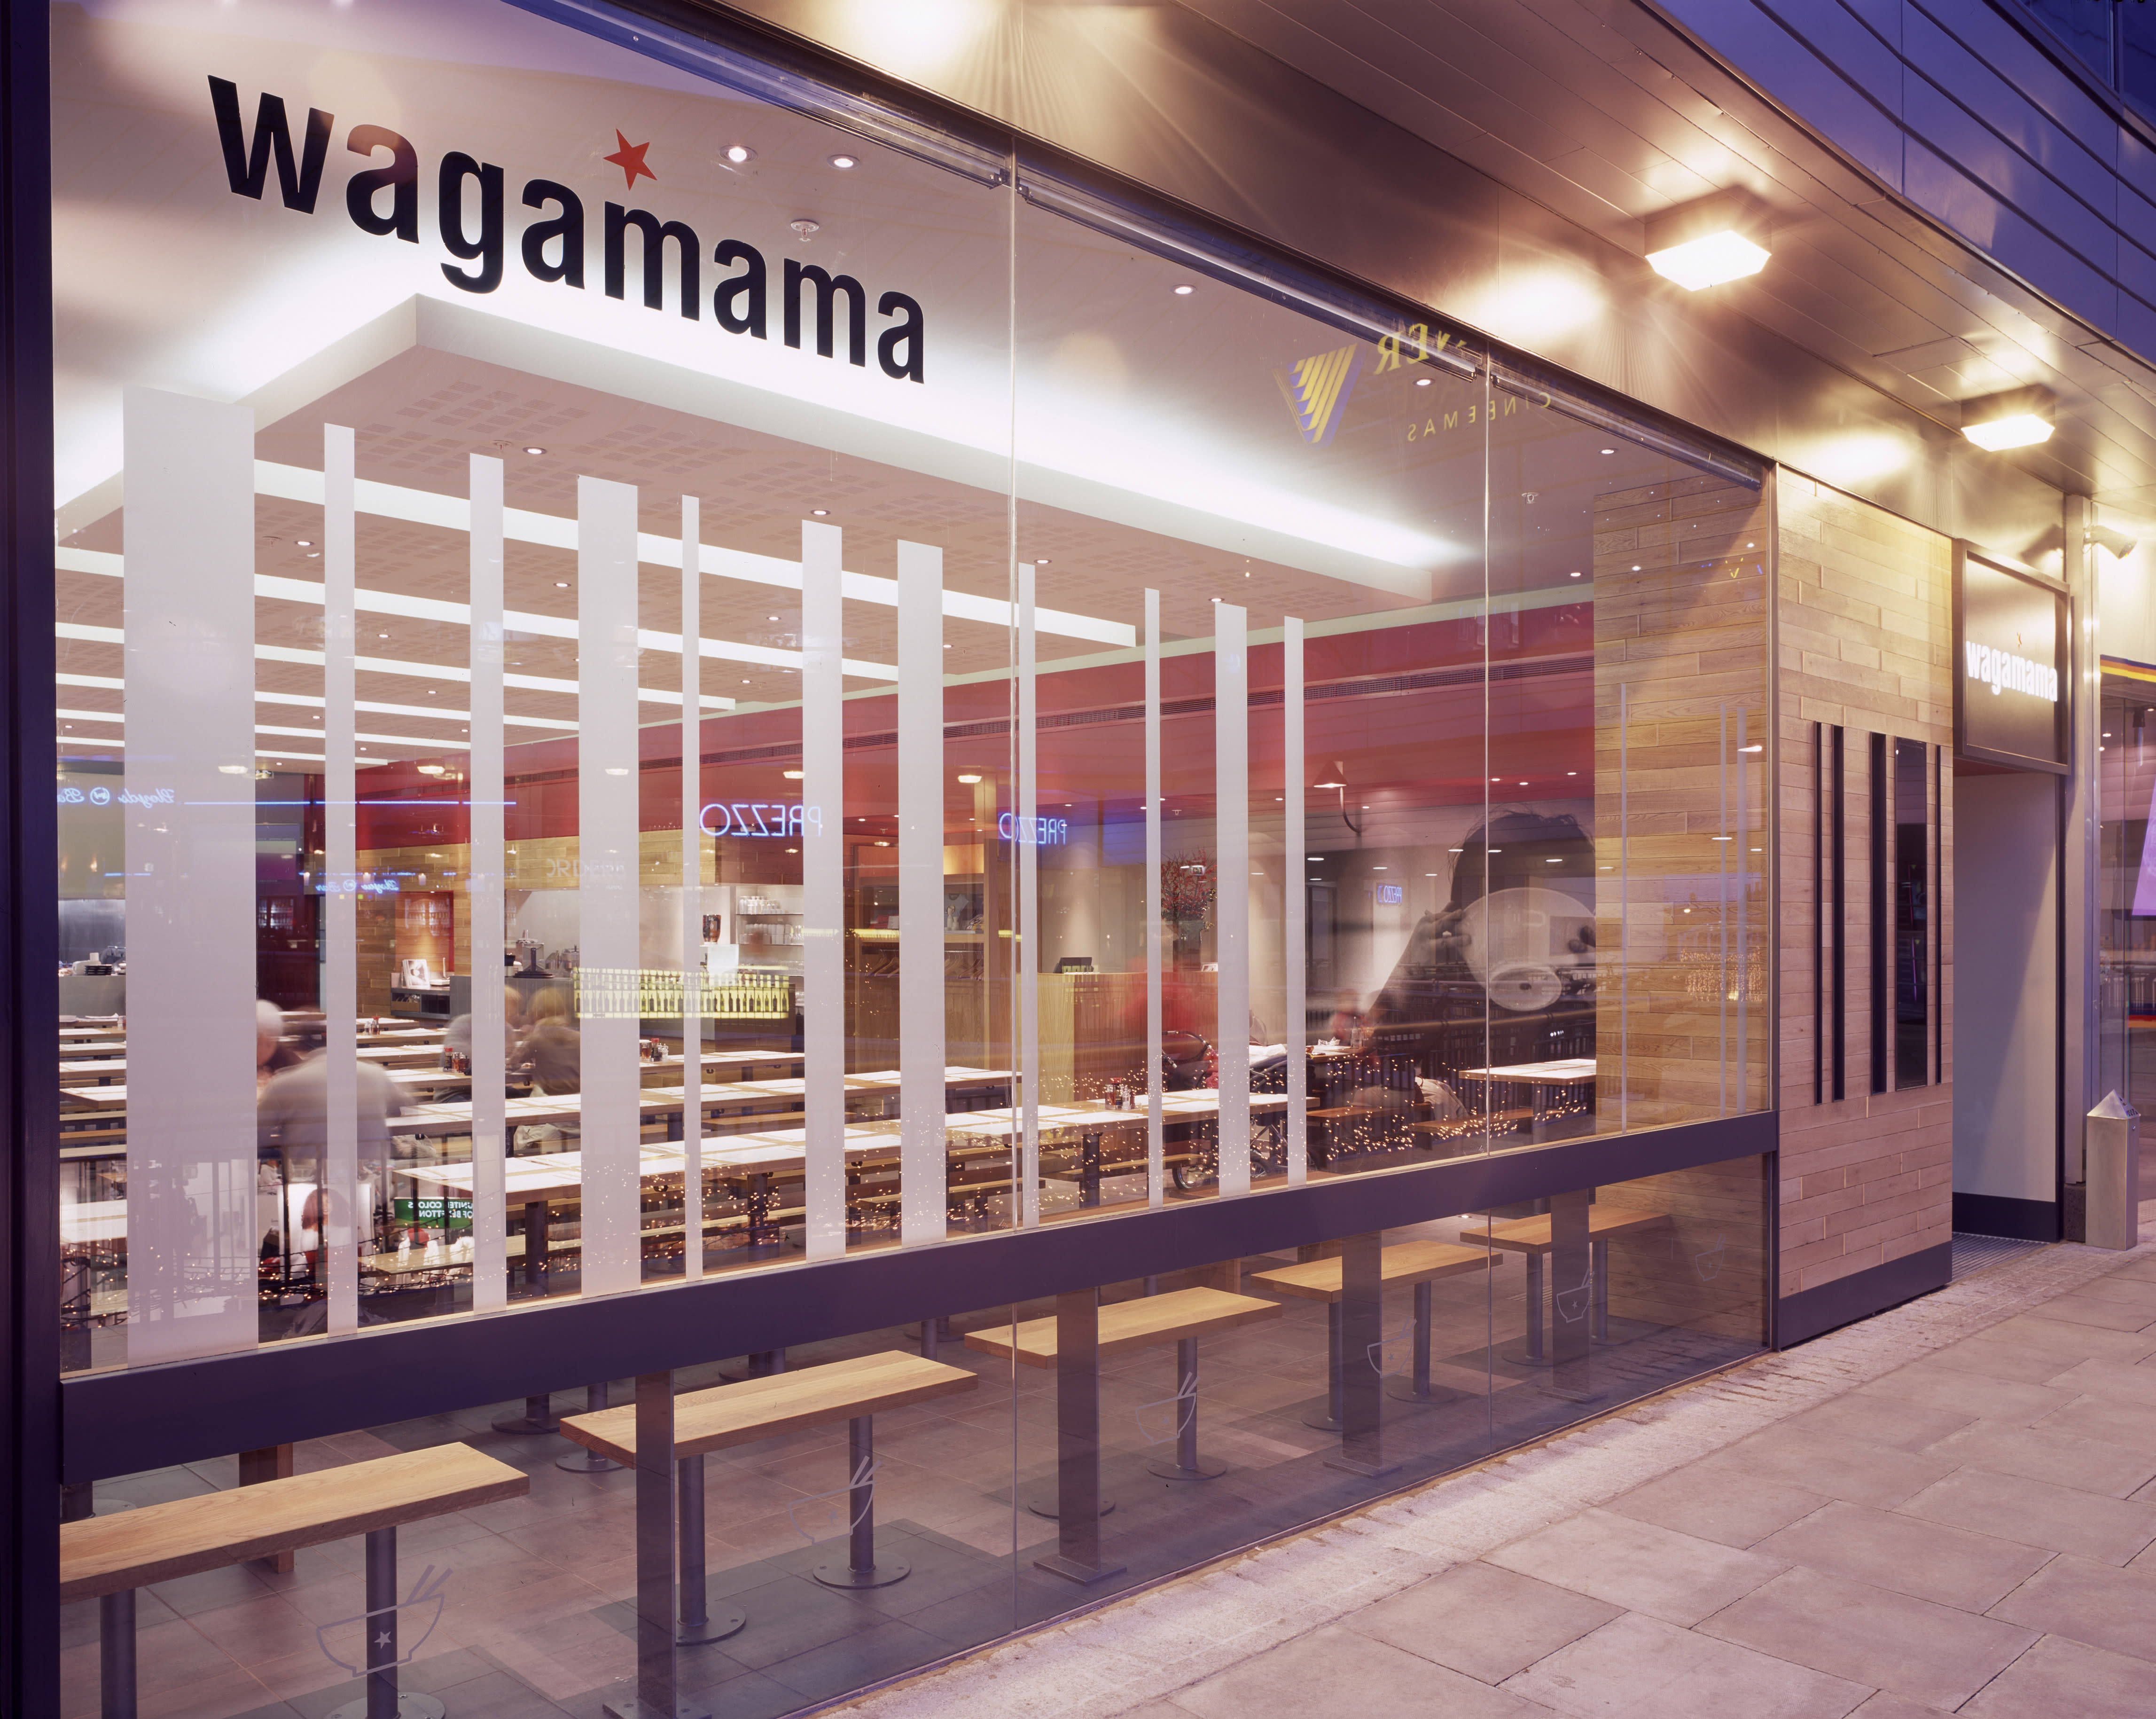 Wagamama releases famous katsu curry recipe for us to make during the lockdown